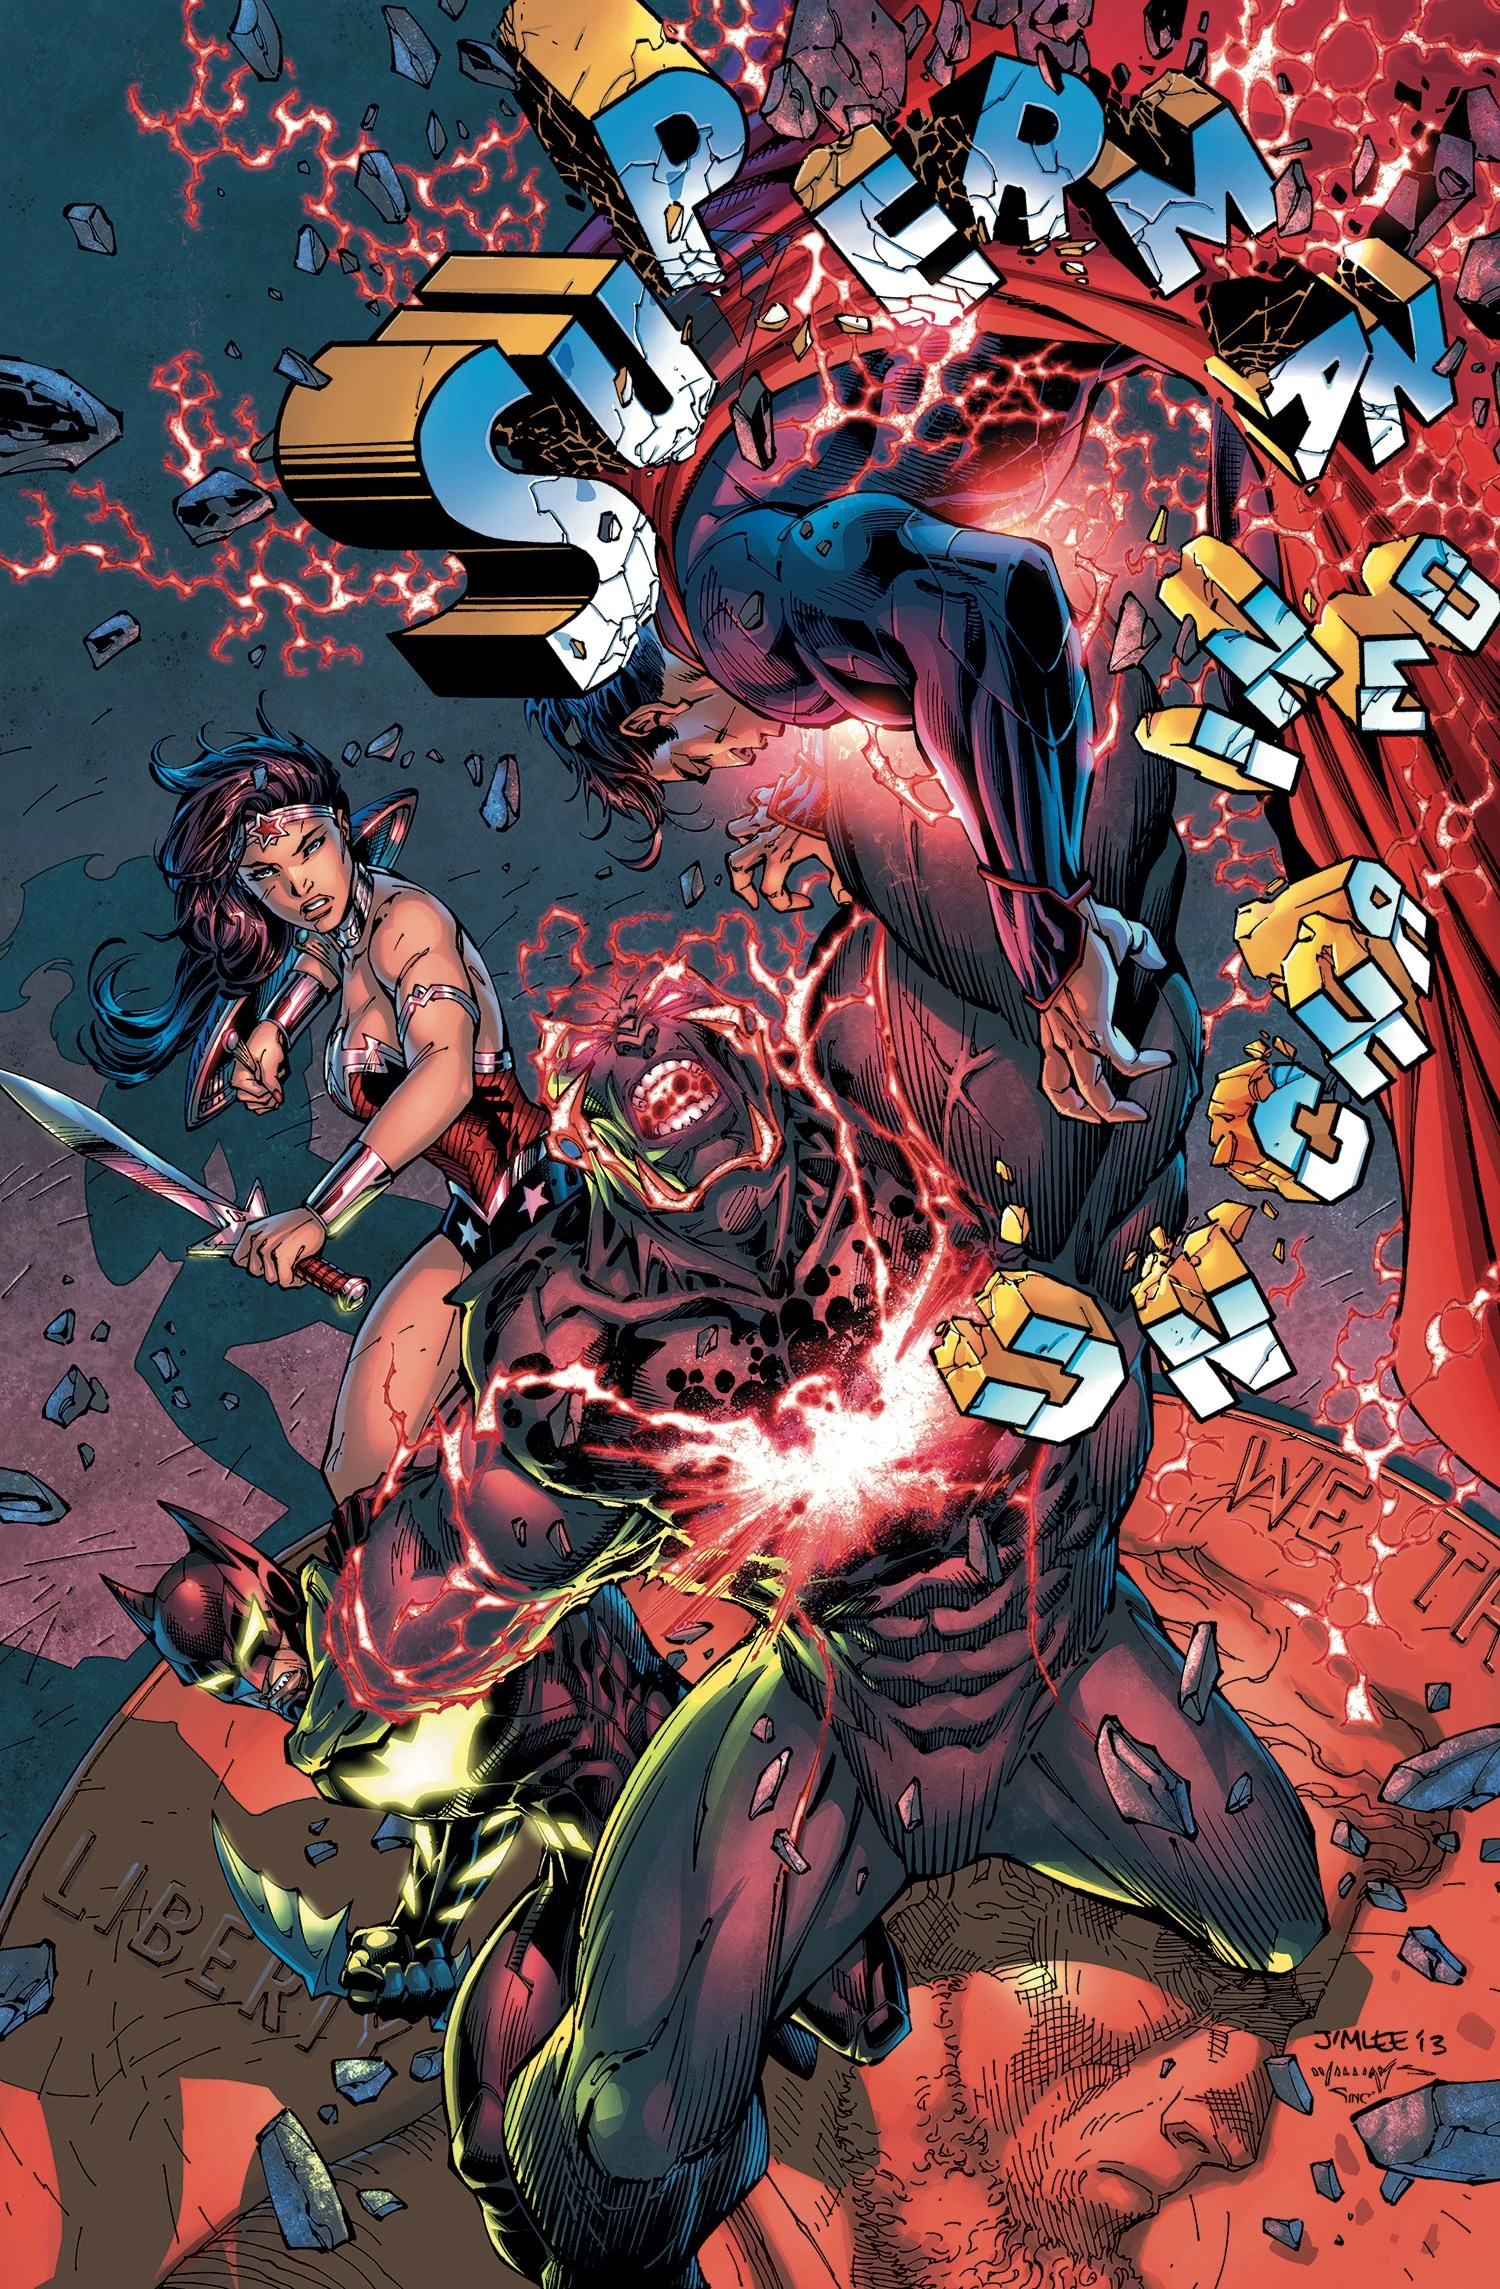 Superman Unchained #7 Cover by Jim Lee